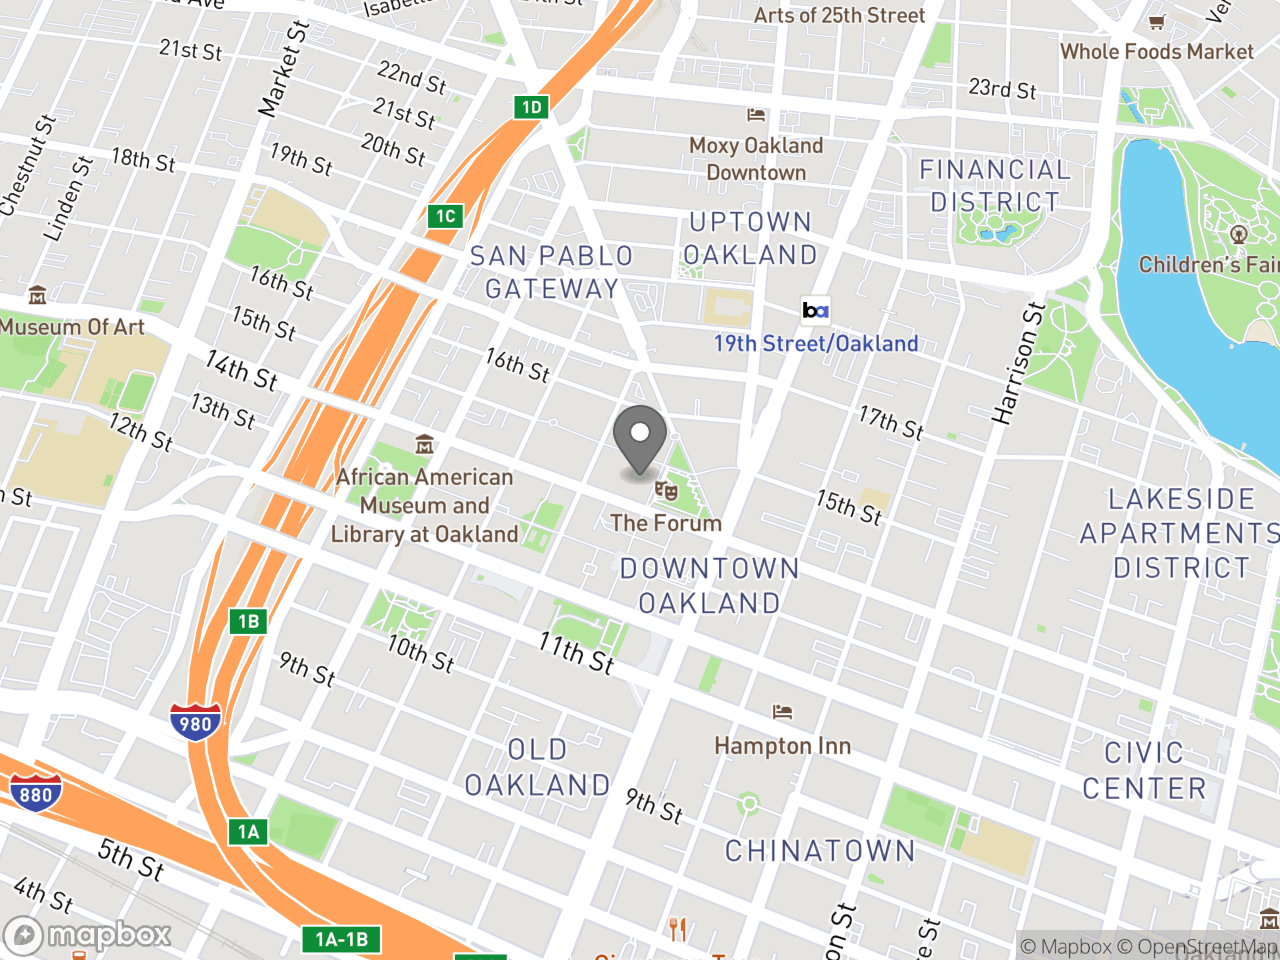 Map location for Downtown Oakland Community Meeting re: Equity Indicators Report, located at 1 Frank H Ogawa Plaza in Oakland, CA 94612